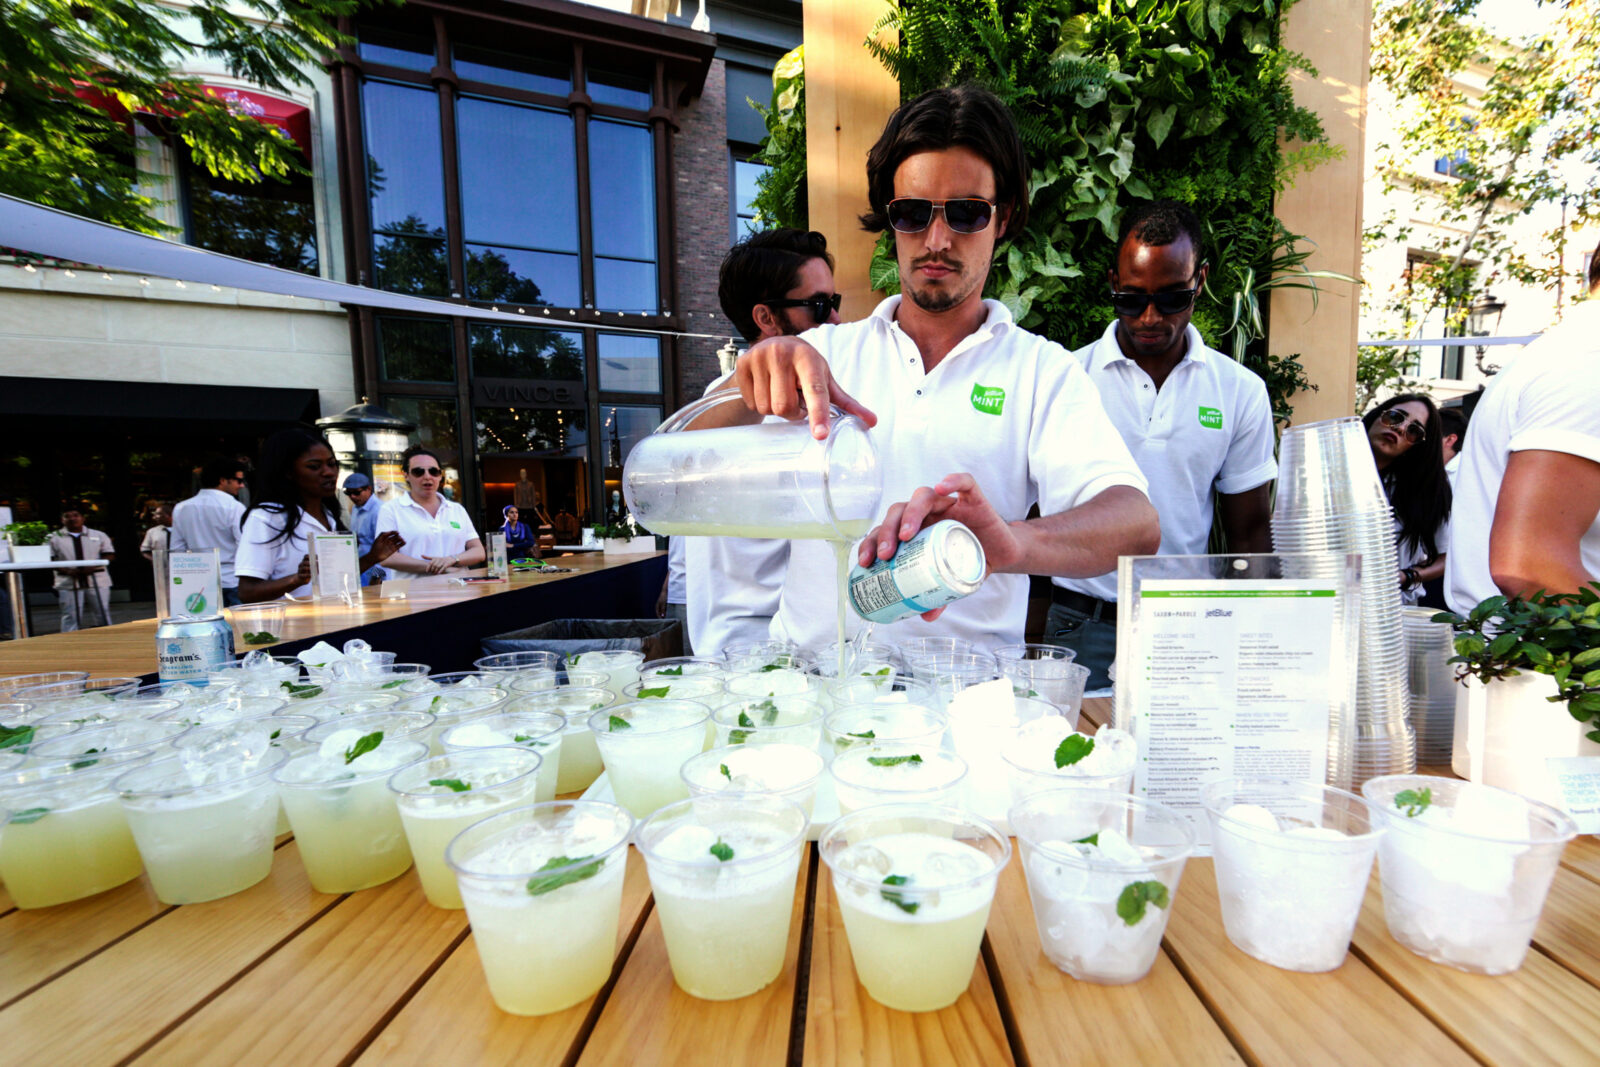 drinks being served at jetblue mint room experiential marketing event